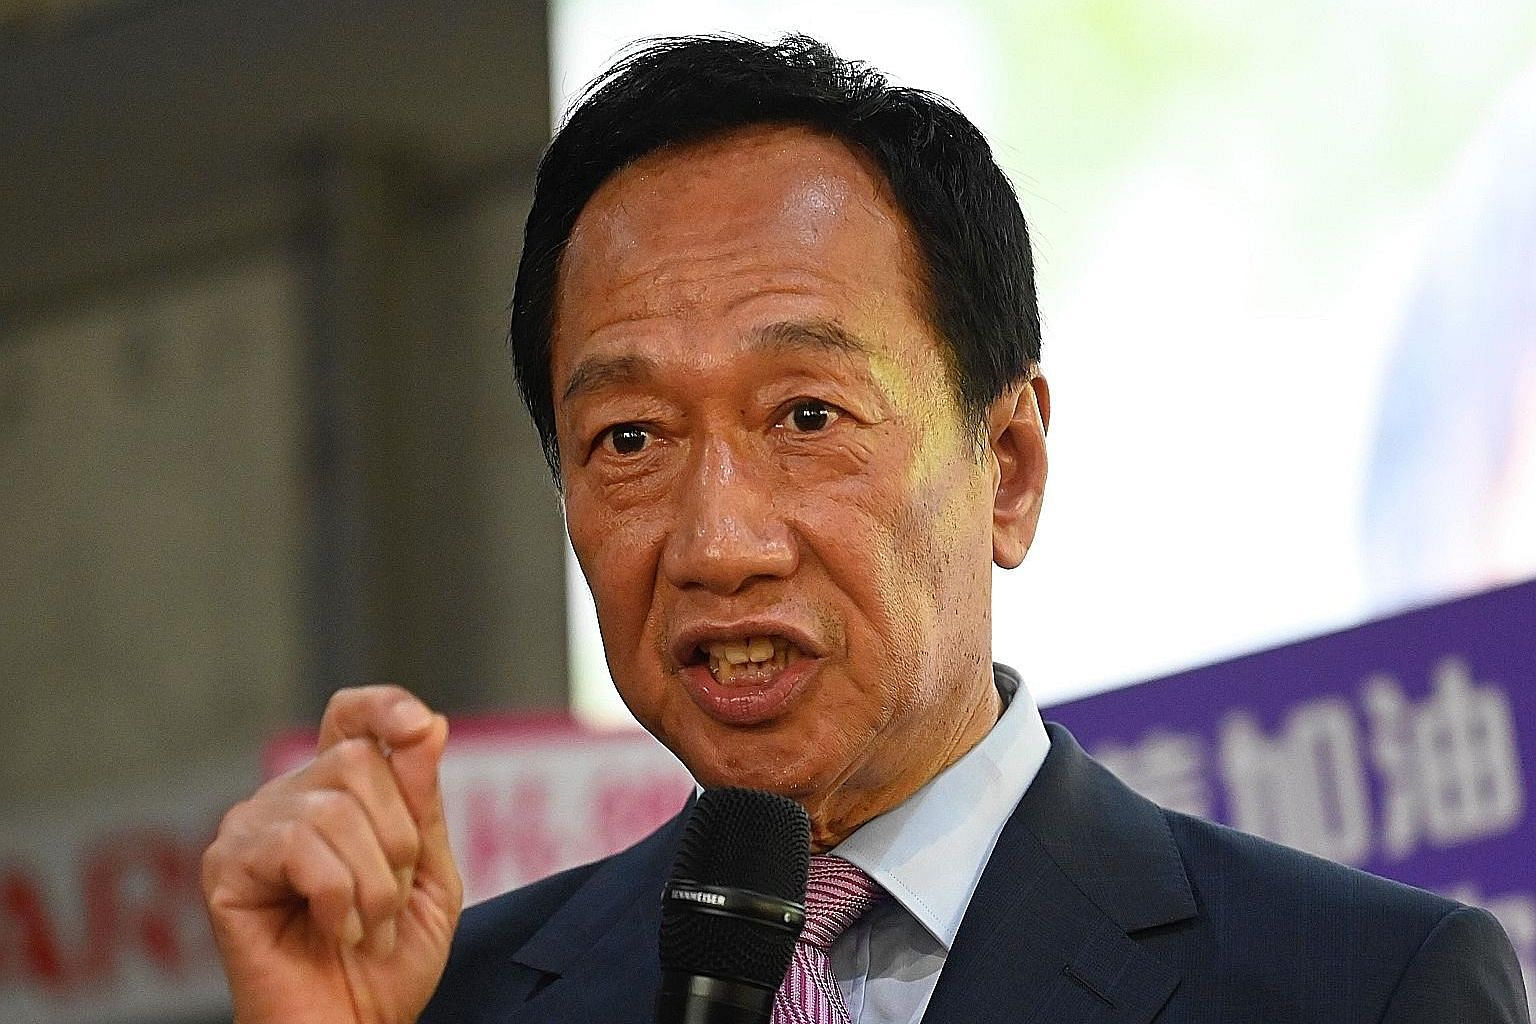 It is not clear if Mr Terry Gou will run as an independent or drop out of the presidential campaign.